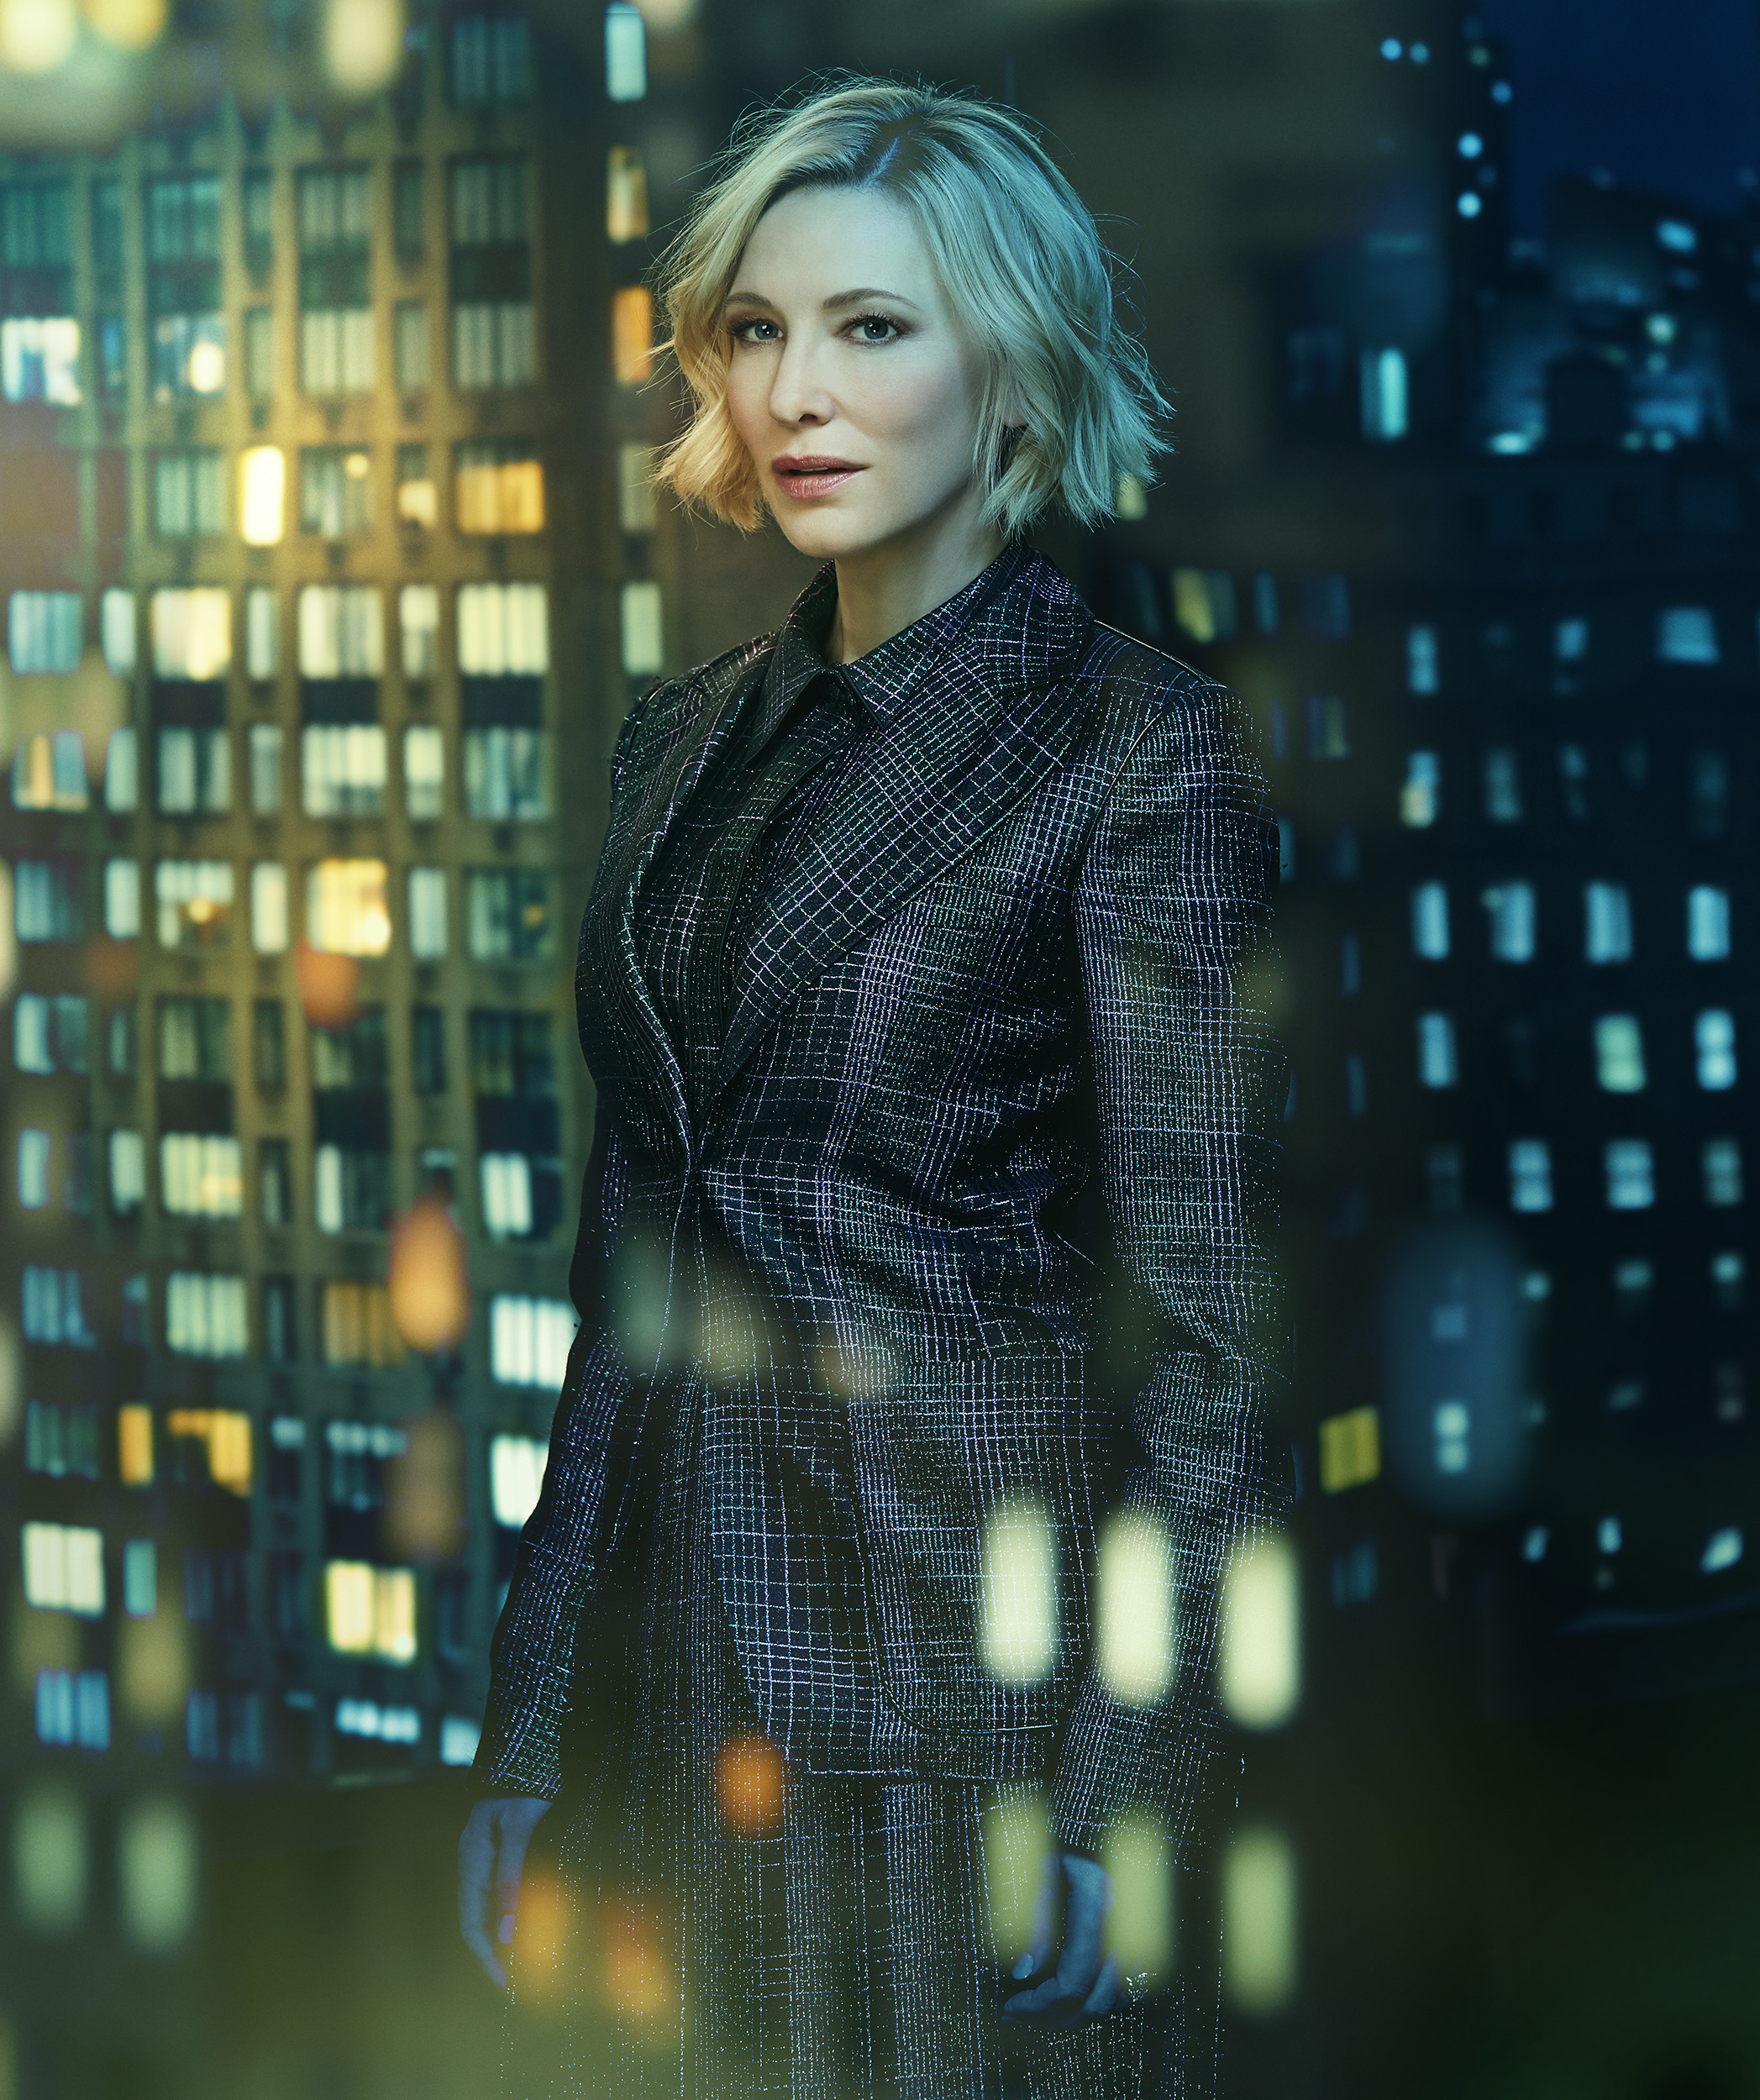 Kate-Blanchett-by-Robert-Ascroft